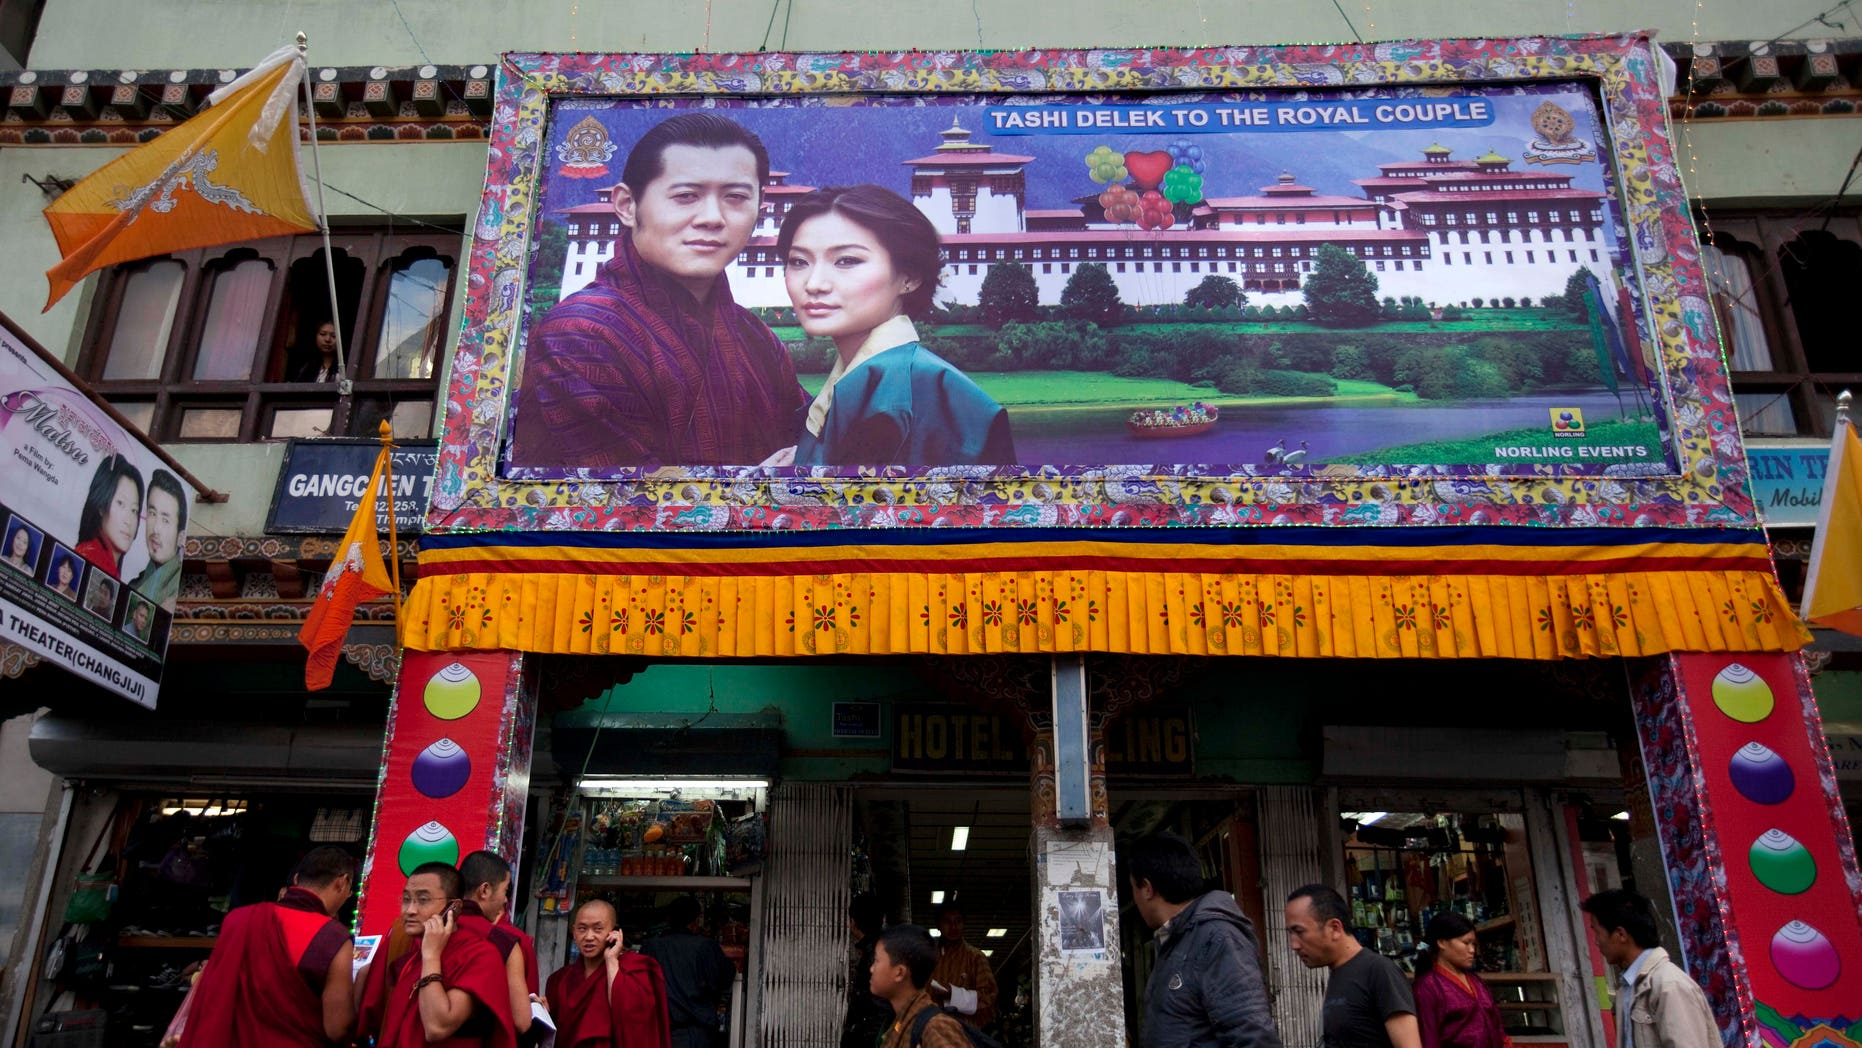 A large banner of King Jigme Khesar Namgyal Wangchuck and future Queen Jetsun Pema is seen on a storefront in the capital of Thimphu, Bhutan, Wednesday, Oct. 12, 2011. The 31 year-old reformist monarch of the small Himalayan Kingdom will wed his commoner bride in a series ceremonies set for Thursday.